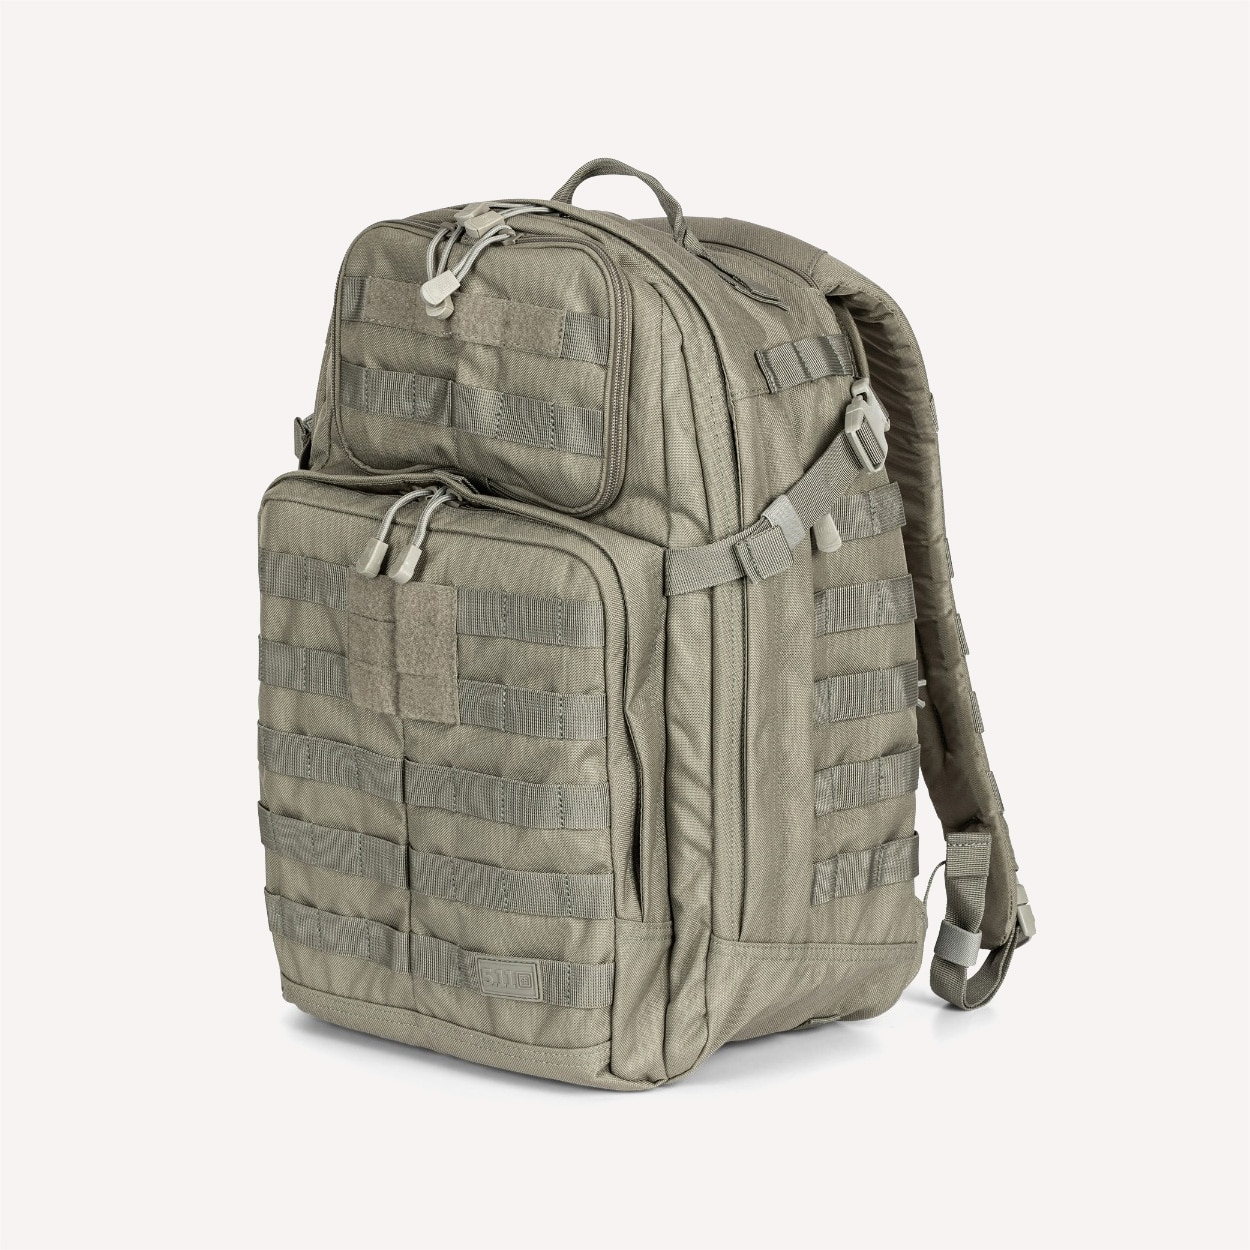 RUSH24 2.0 BACKPACK 37L LIMITED EDITION PYTHON COLOR